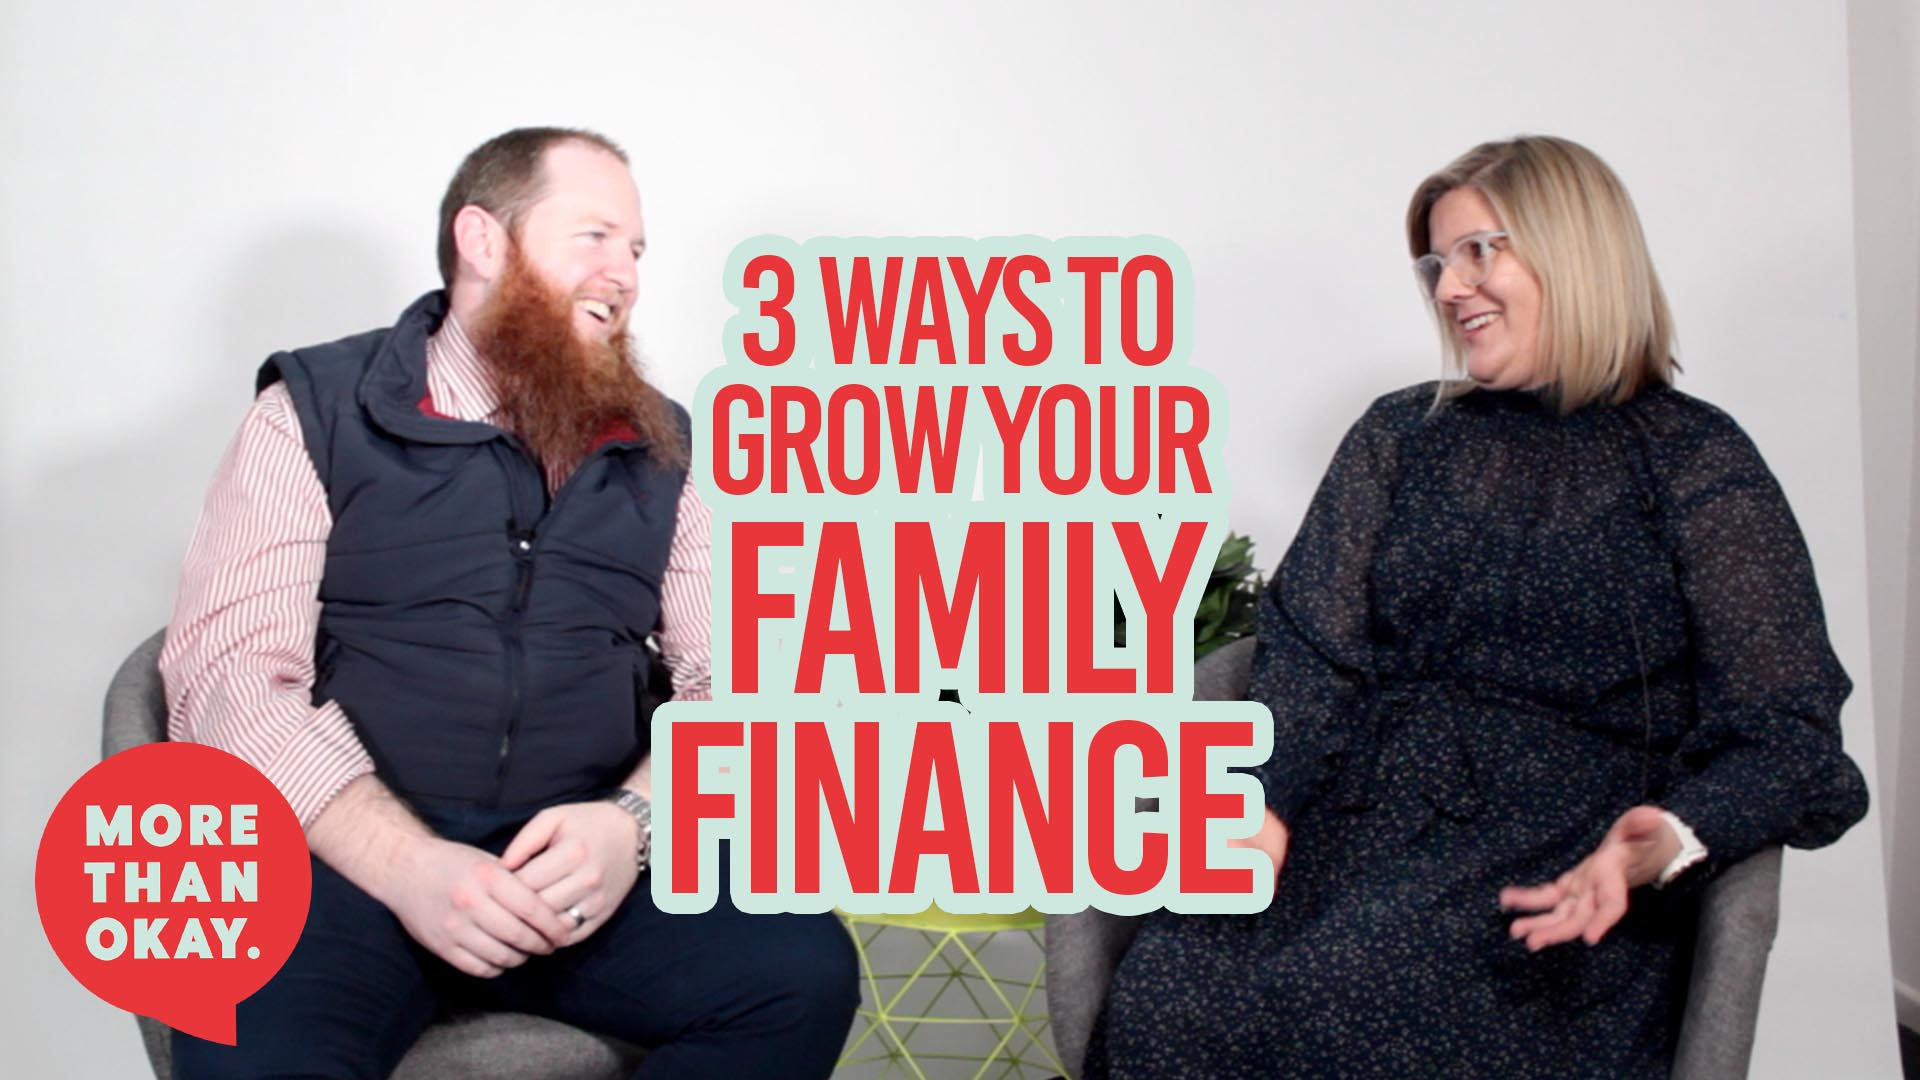 3 ways to grow your family finances